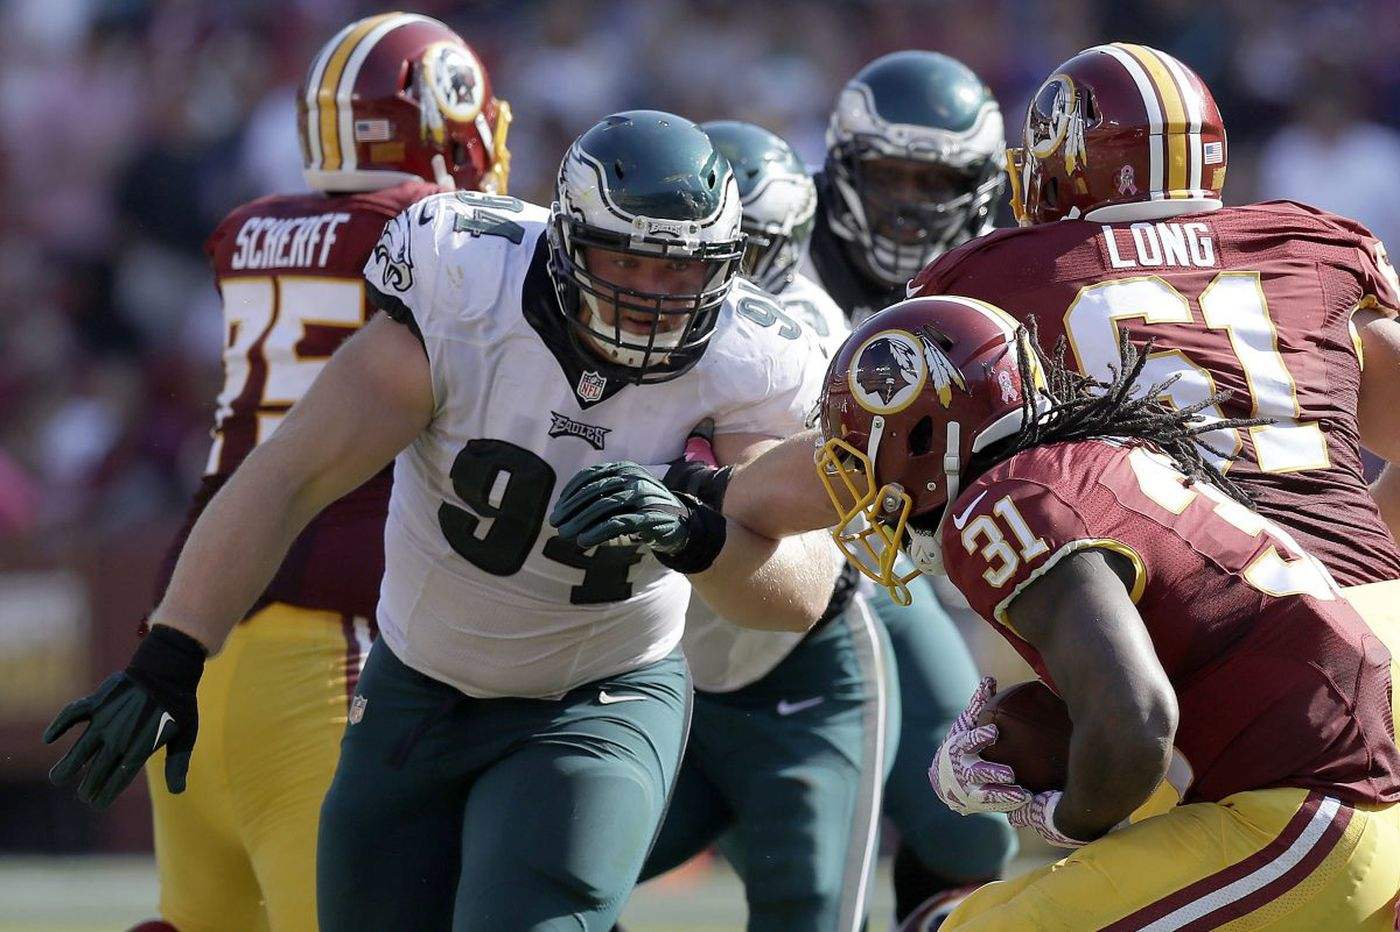 Chargers won't mistake Beau Allen for Fletcher Cox, but they shouldn't dismiss him